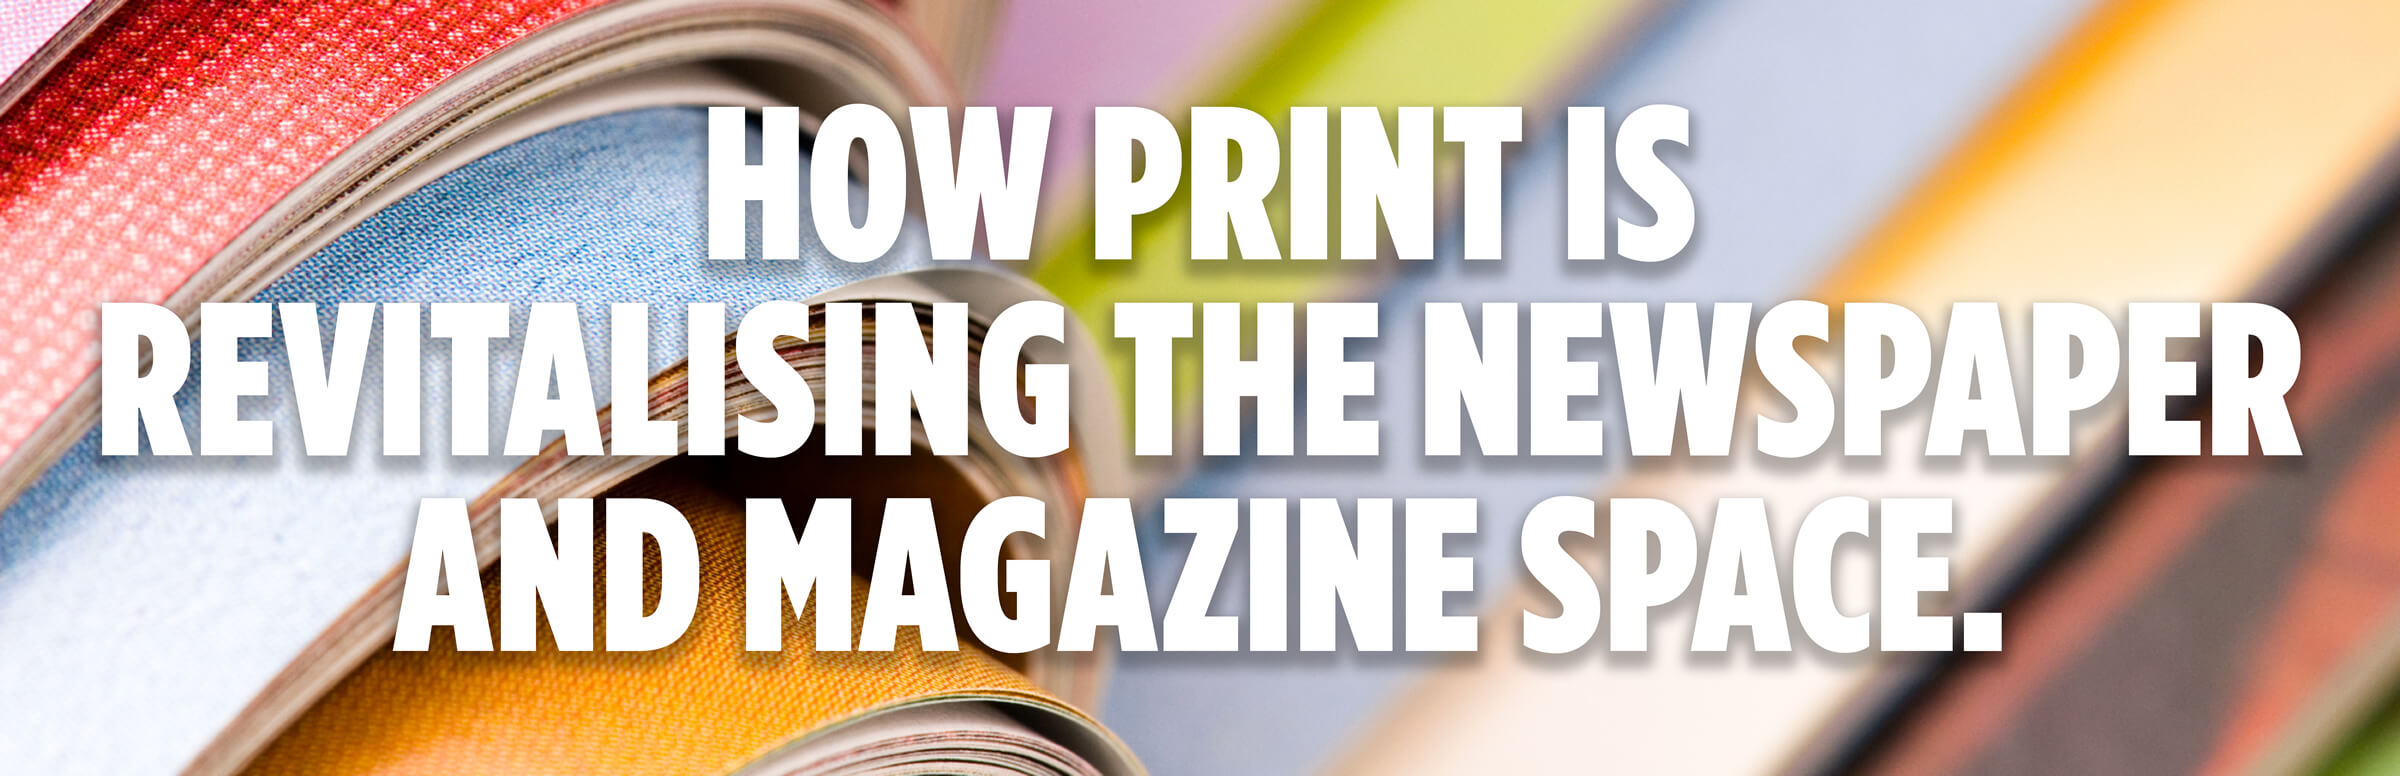 How Print Is Revitalising The Newspaper And Magazine Space